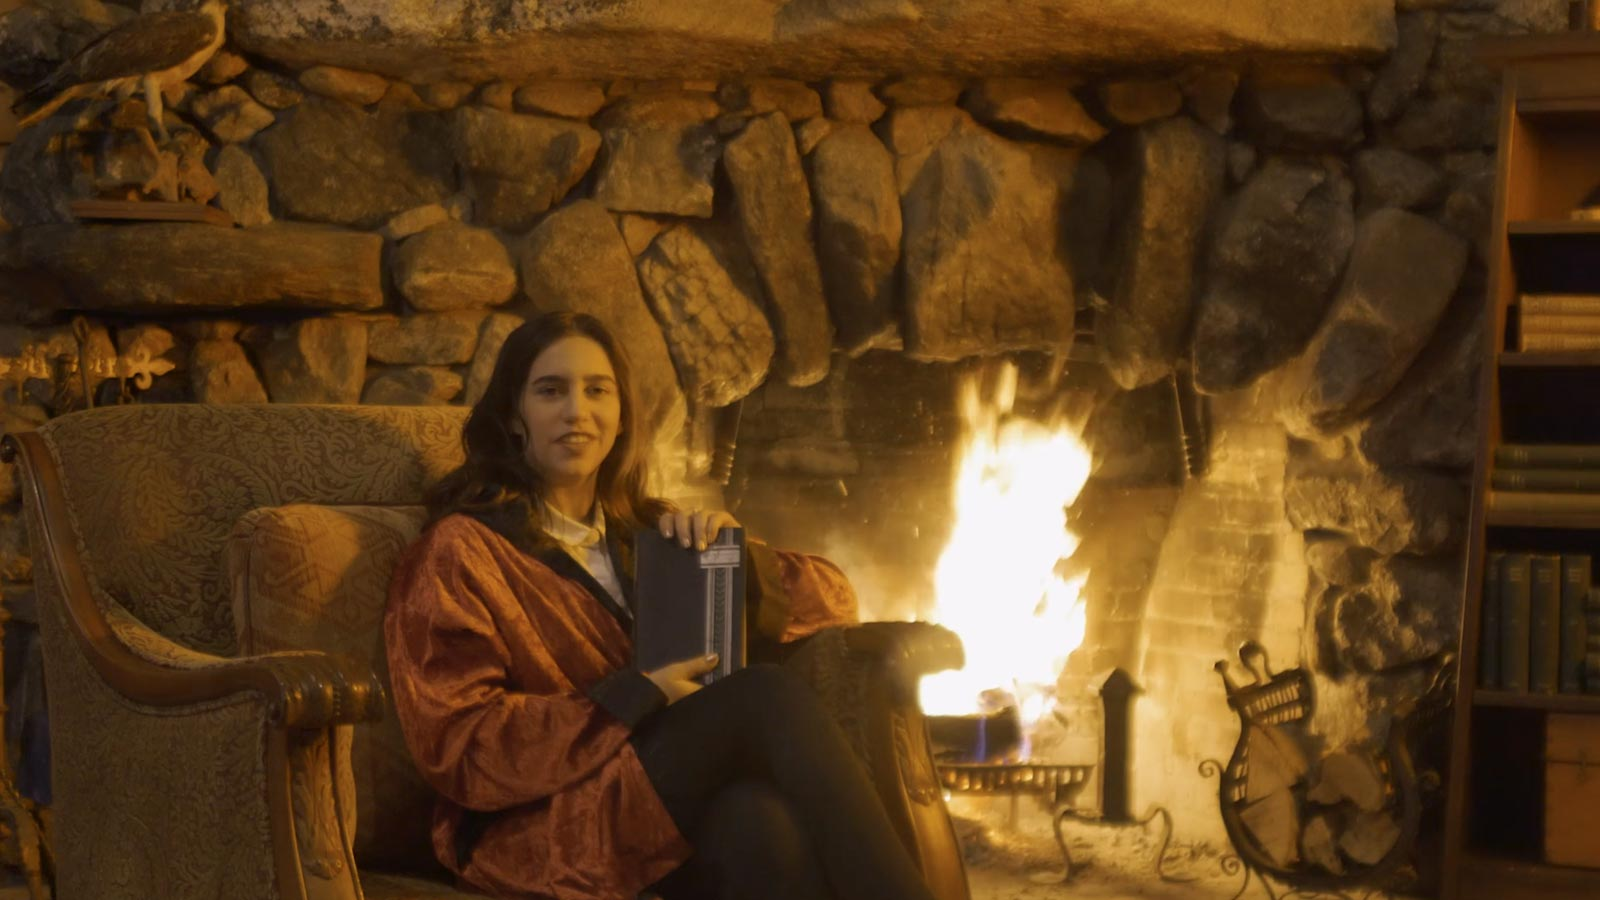 Women in front of fireplace with book